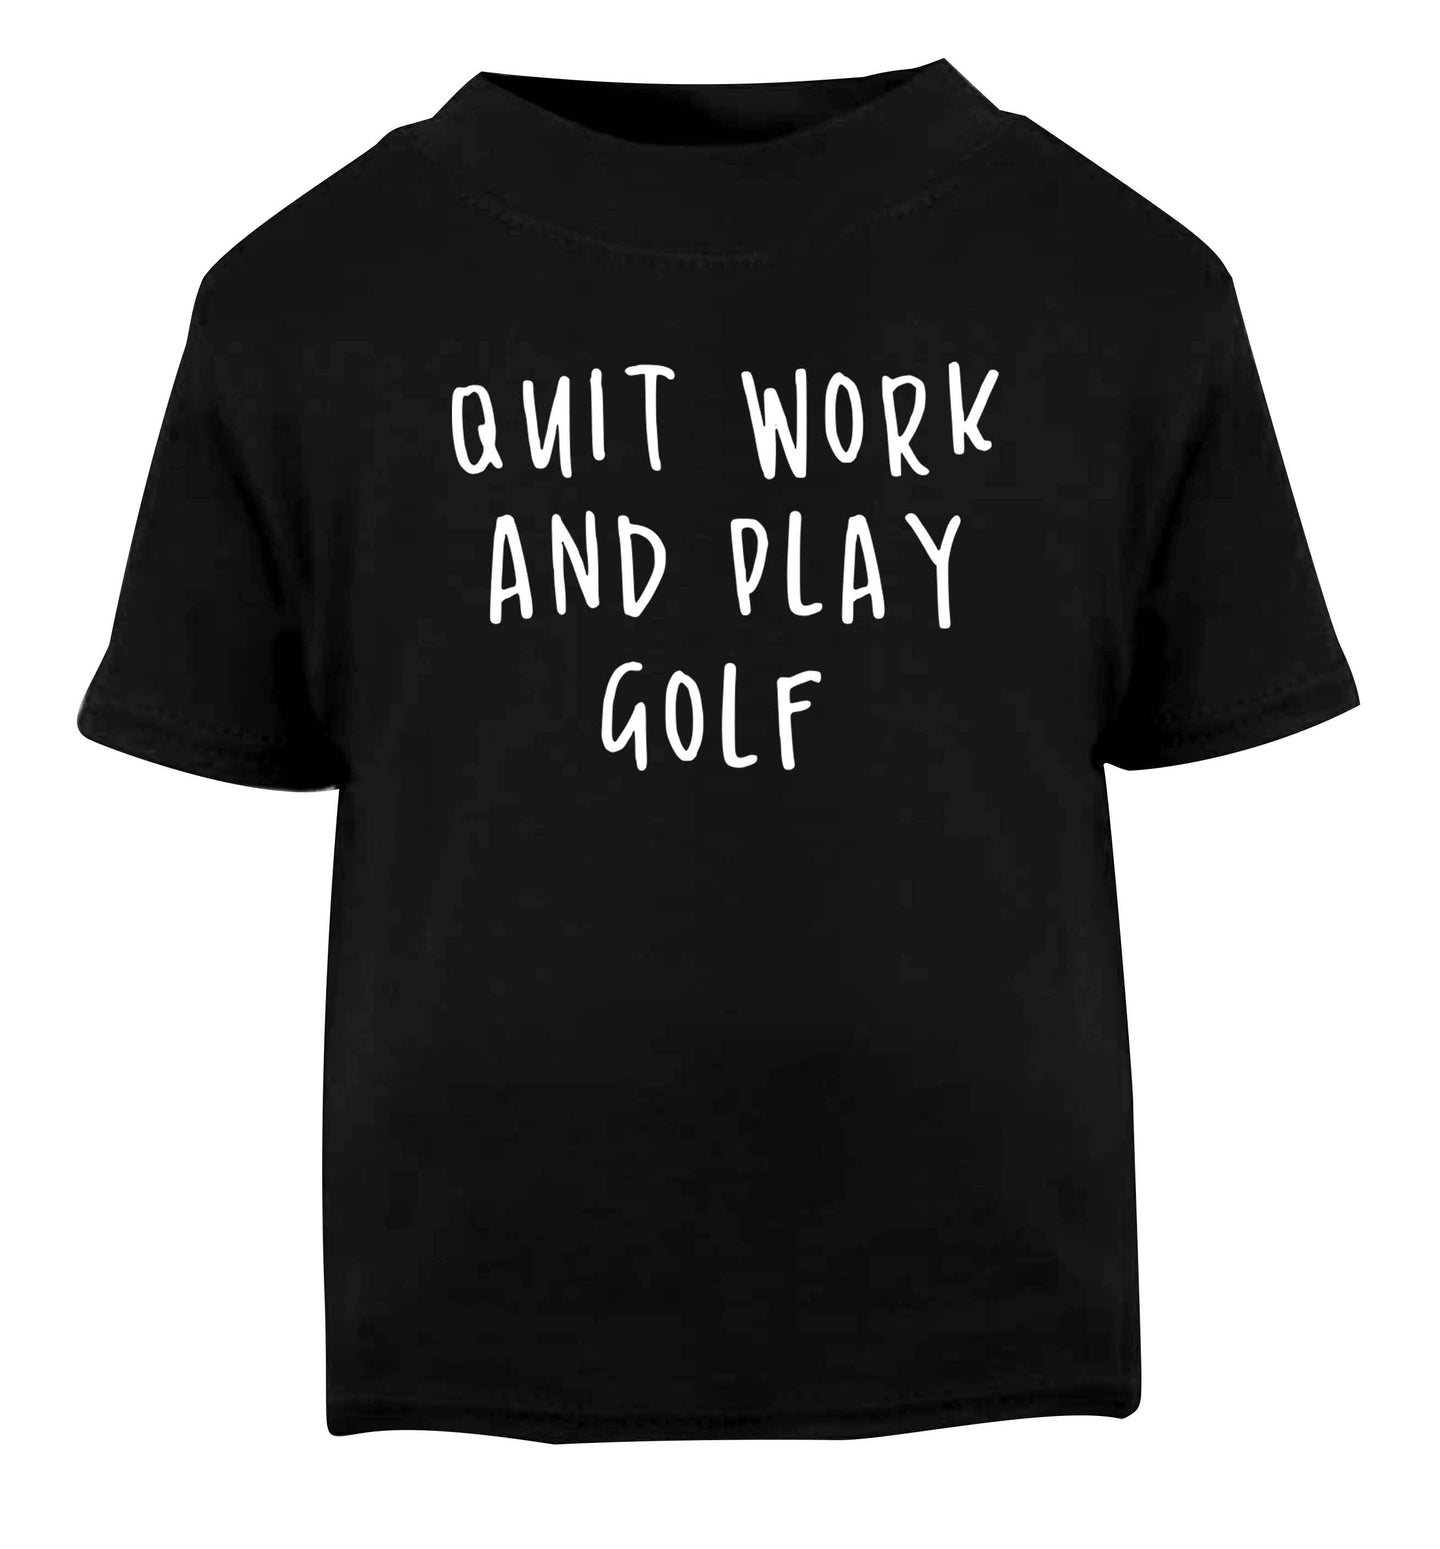 Quit work and play golf Black Baby Toddler Tshirt 2 years